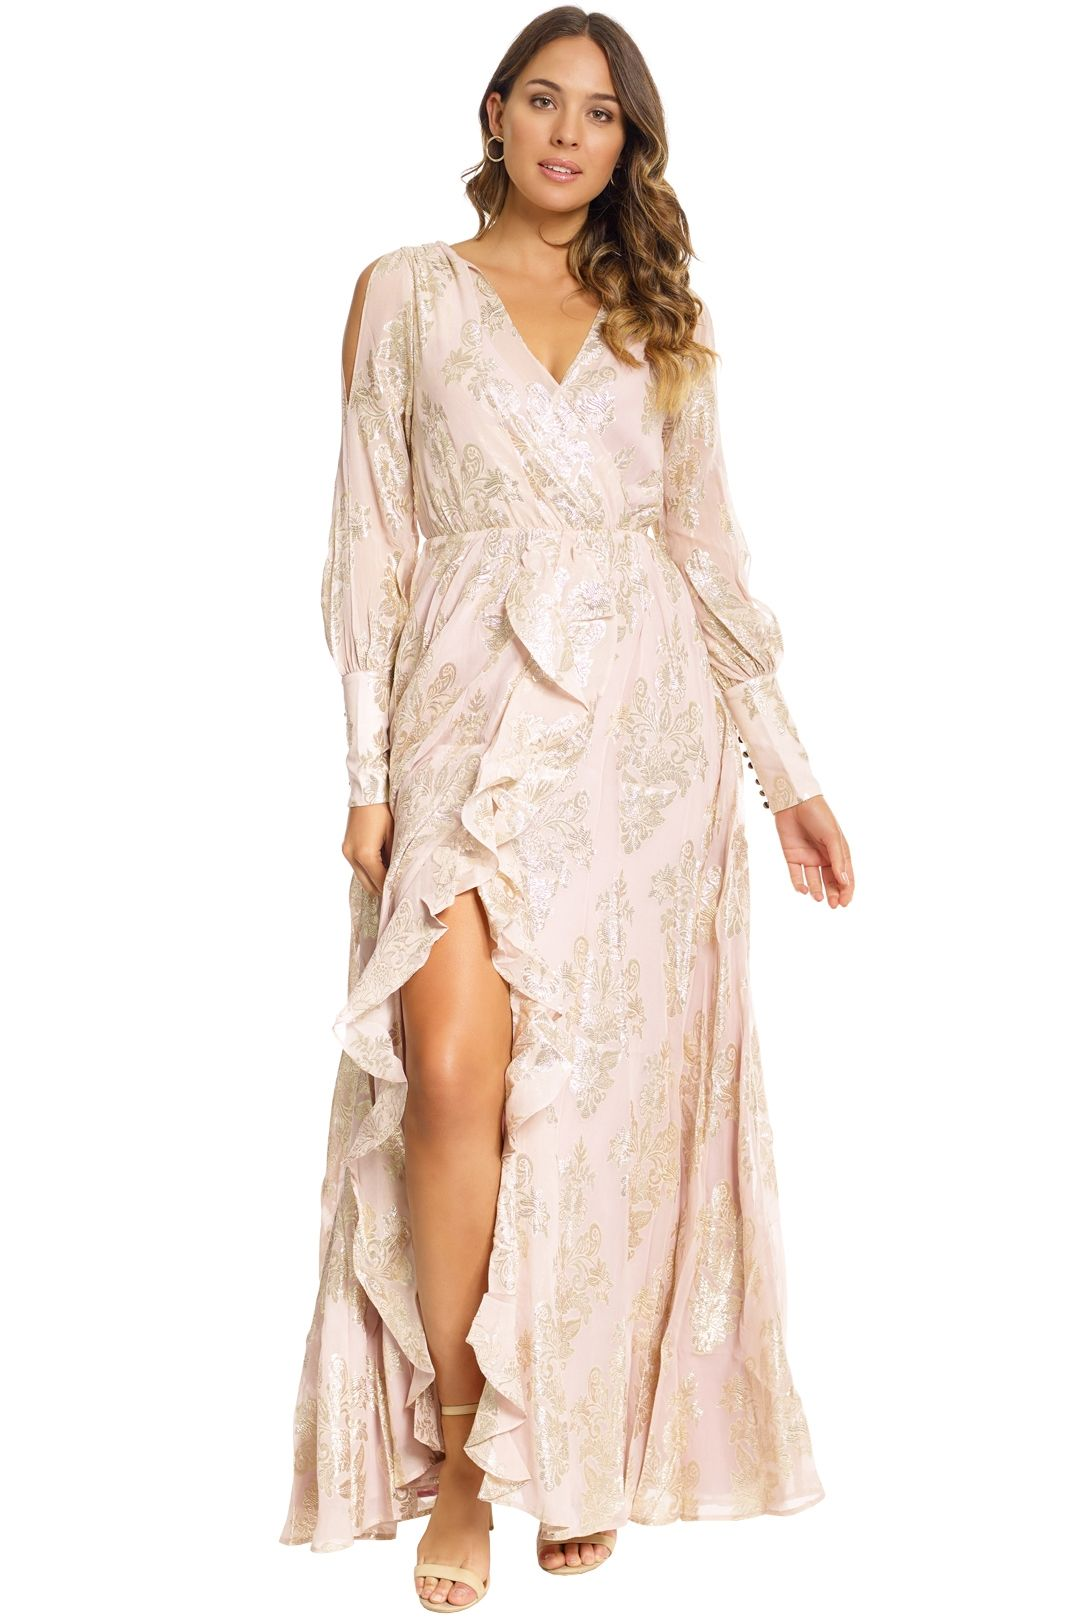 We Are Kindred - Lotus Maxi Dress - Blush - Front